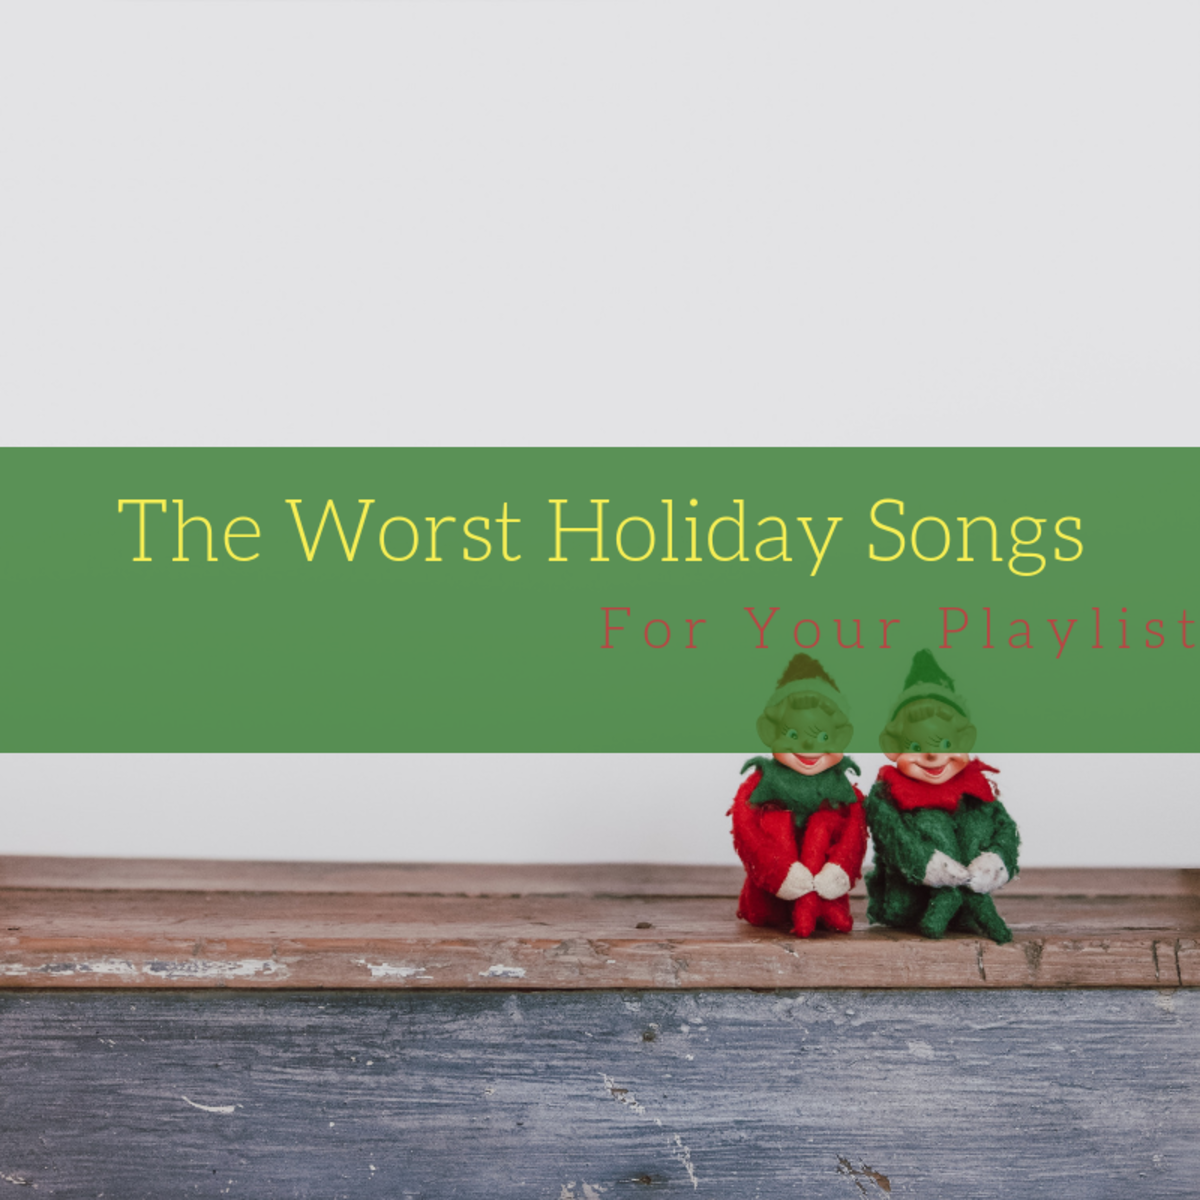 You might lose friends and family if any of these songs sneak their way on your playlist this holiday season.